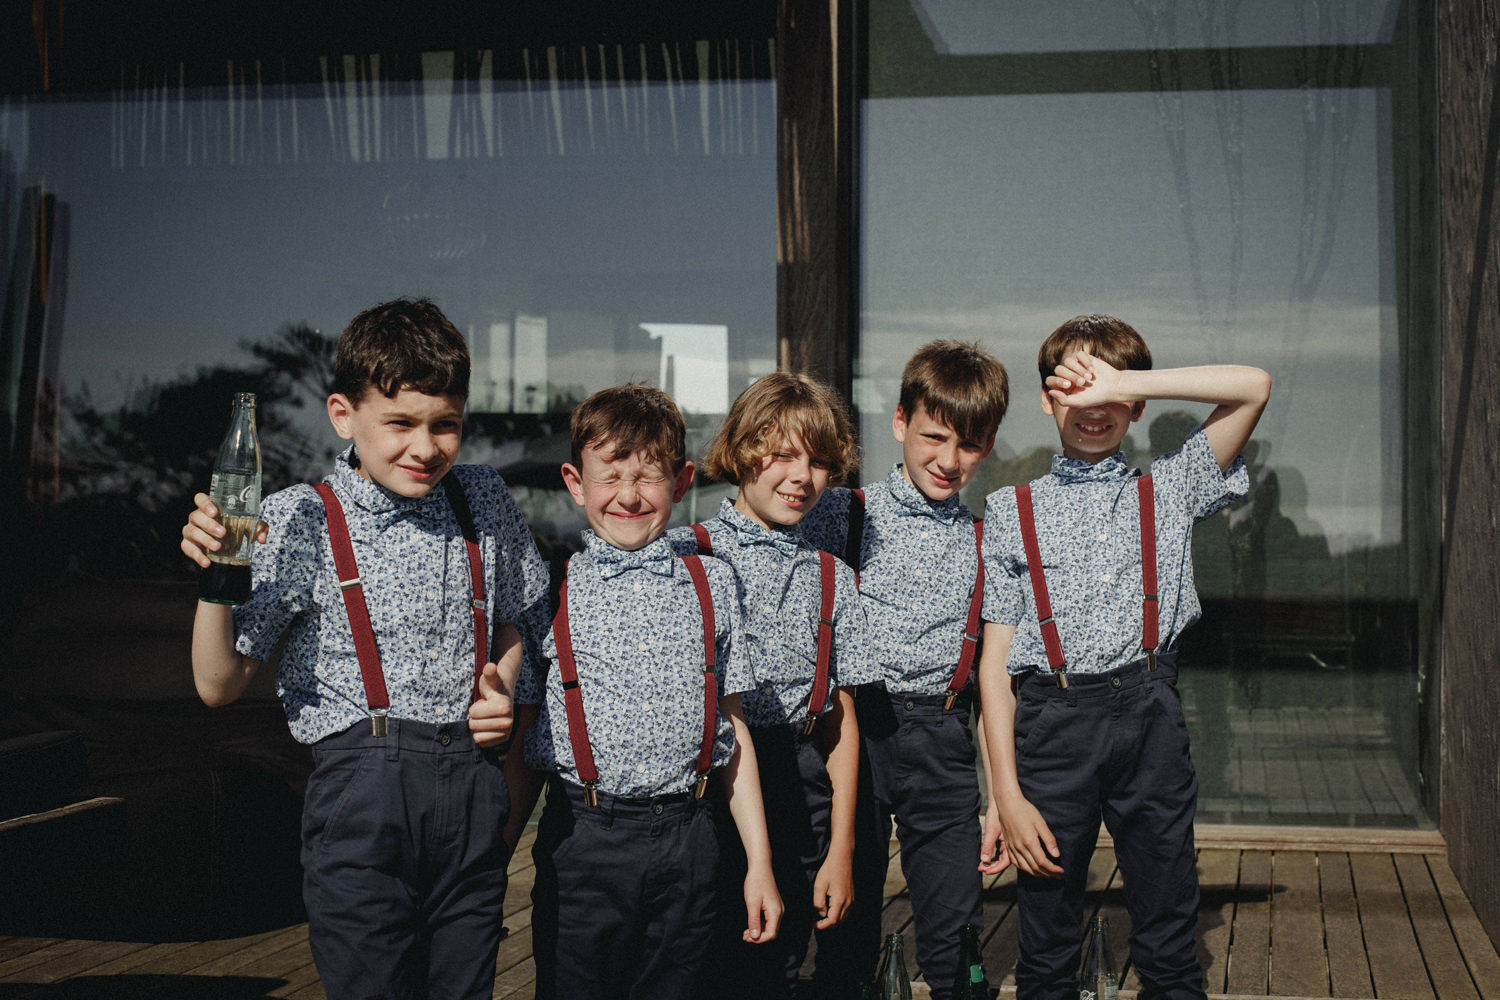 stylish page boys at areias do seixo